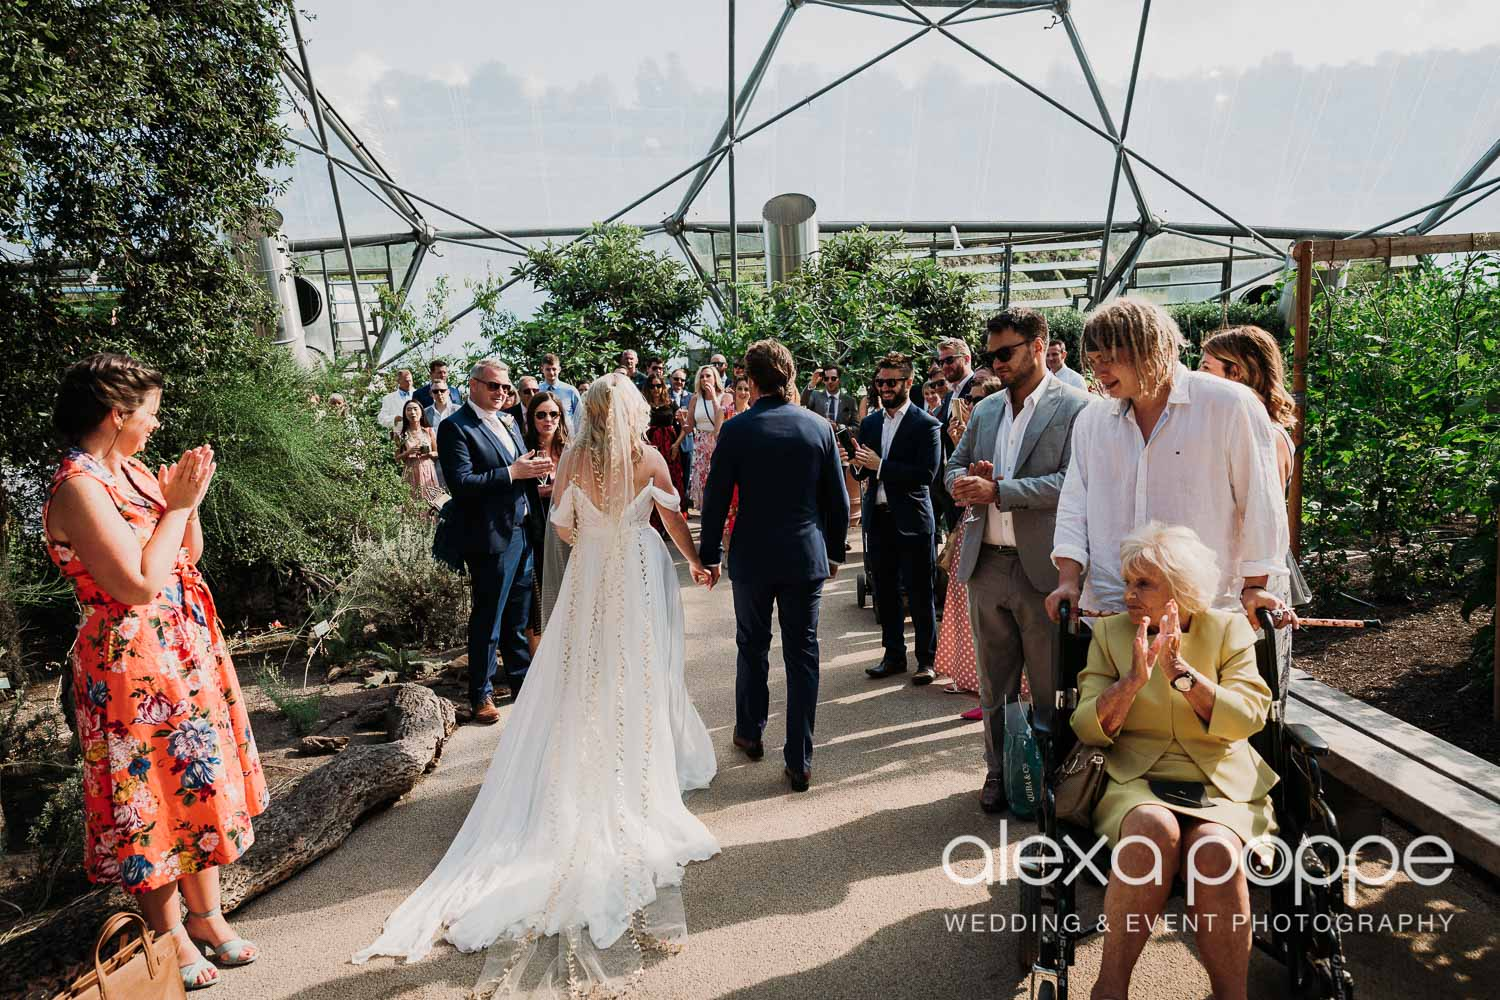 VA_wedding_edenproject_carnglaze_64.jpg